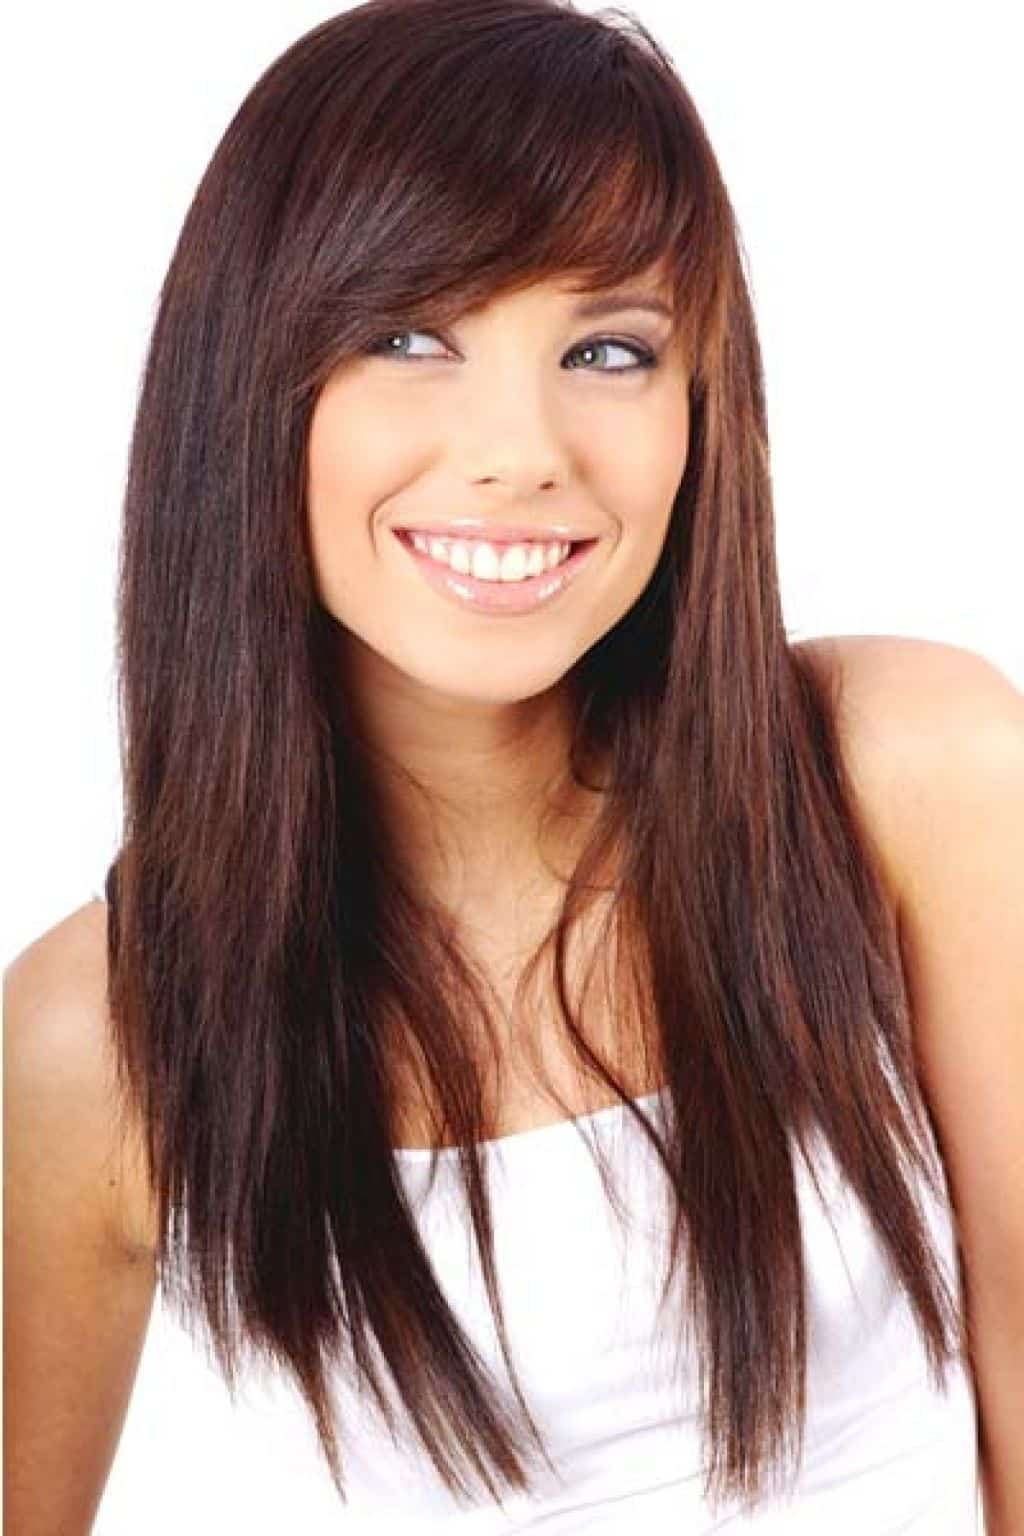 10 Alluring Side Bangs On Long Hair 2018 Hairstylecamp